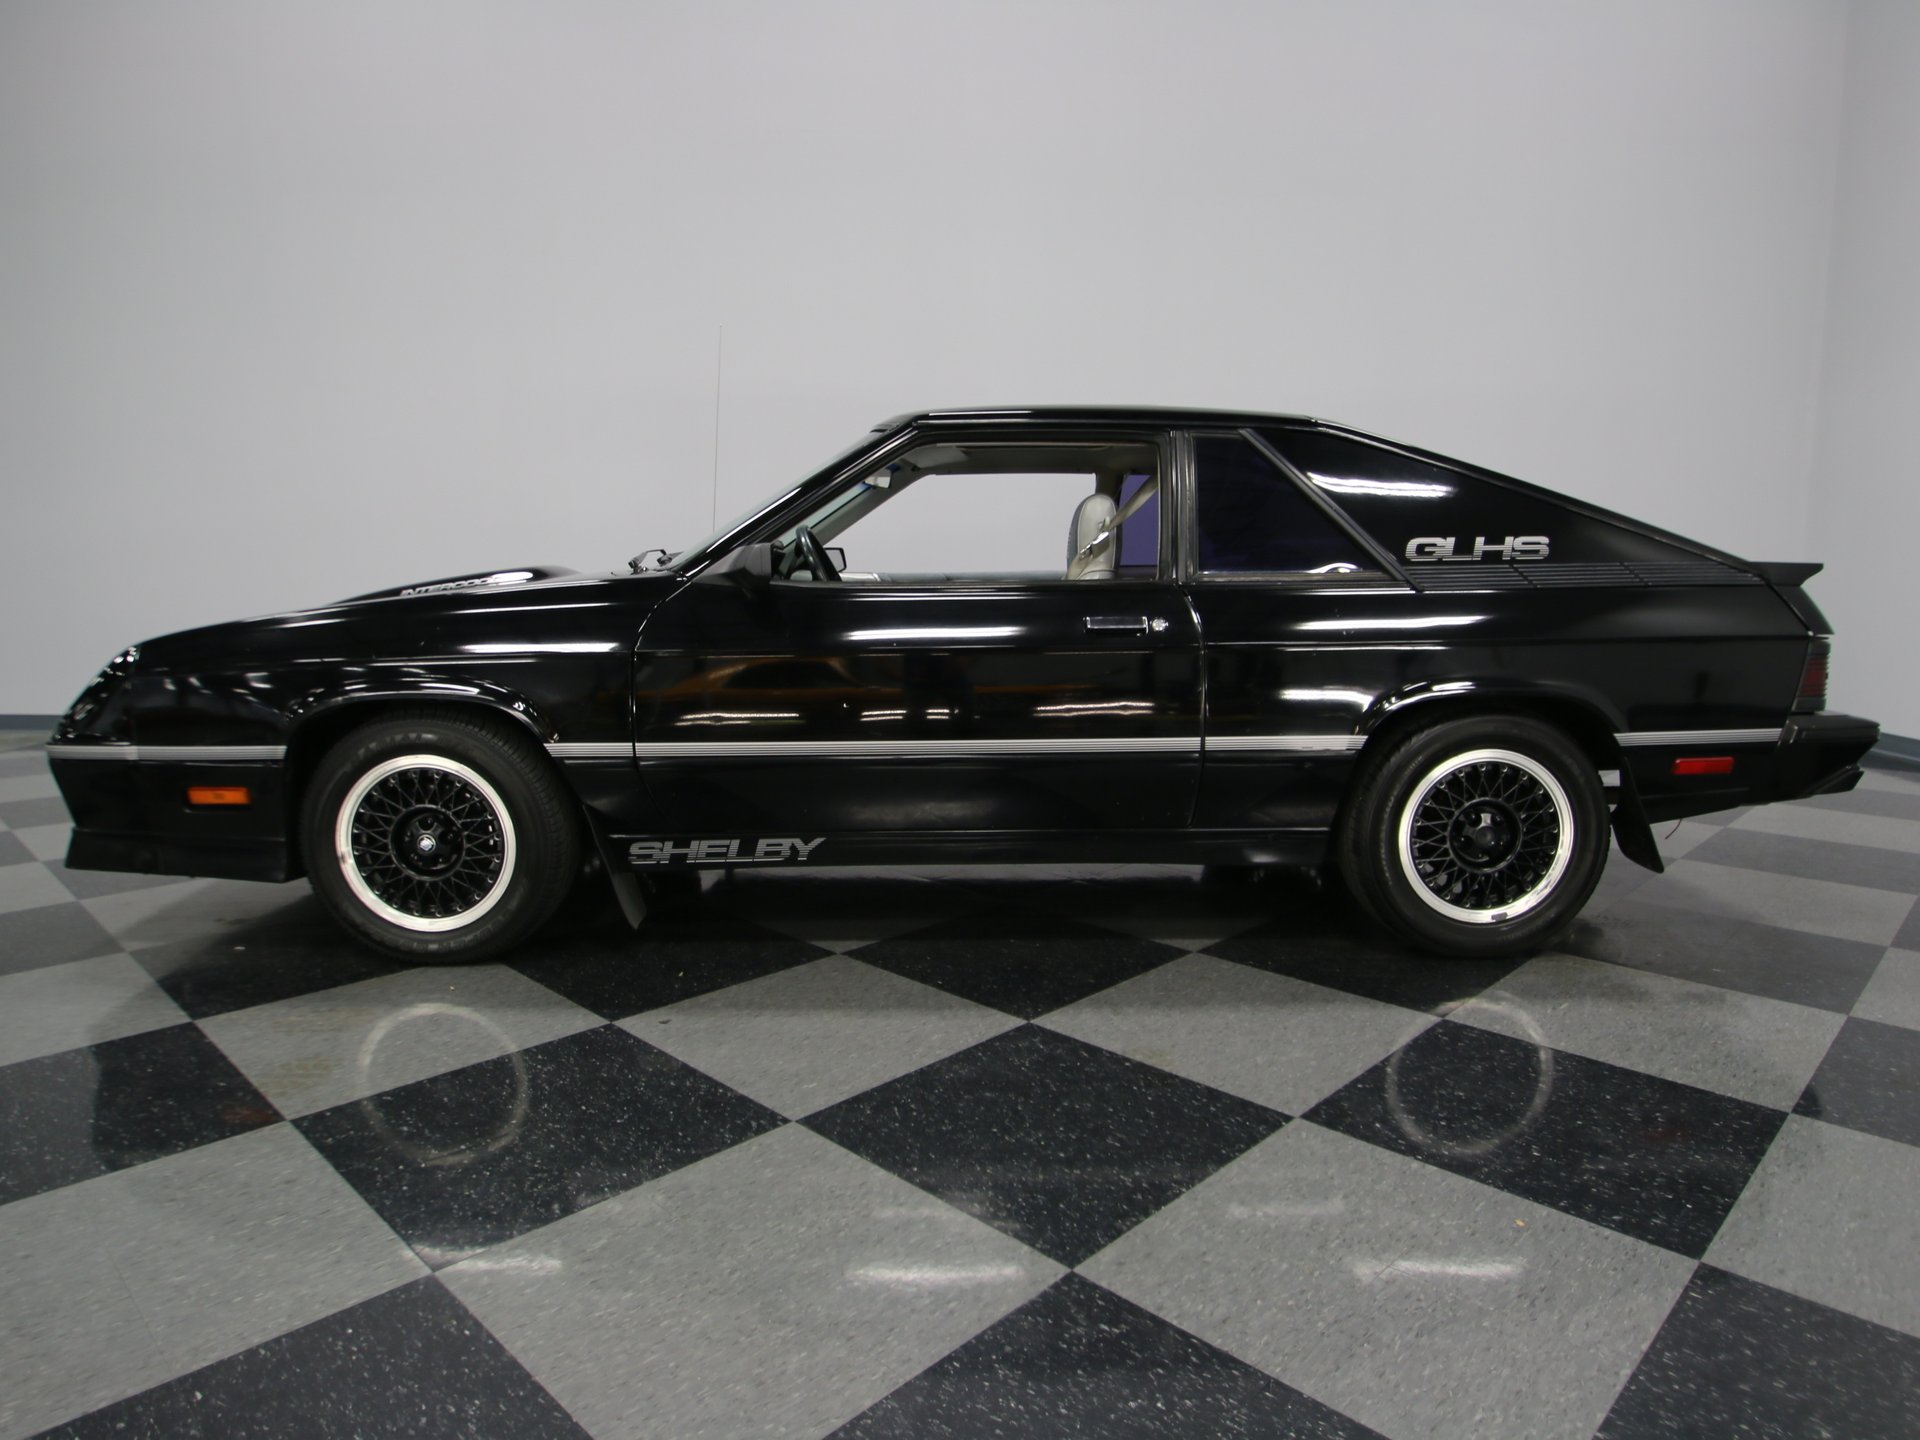 1987 dodge charger glhs